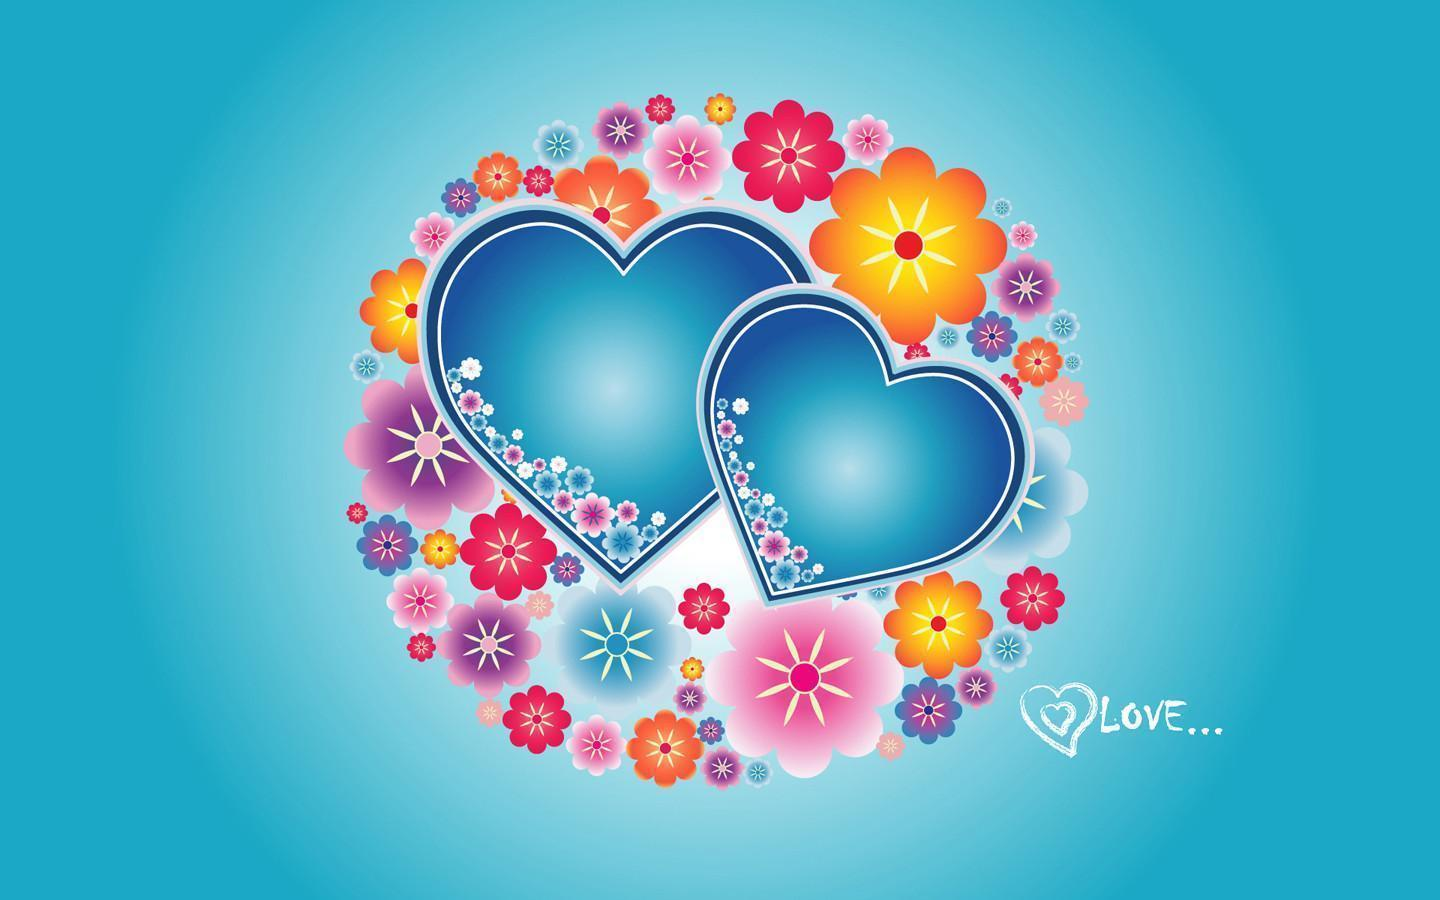 Love Heart Wallpaper Designs : Love Heart Wallpapers HD - Wallpaper cave